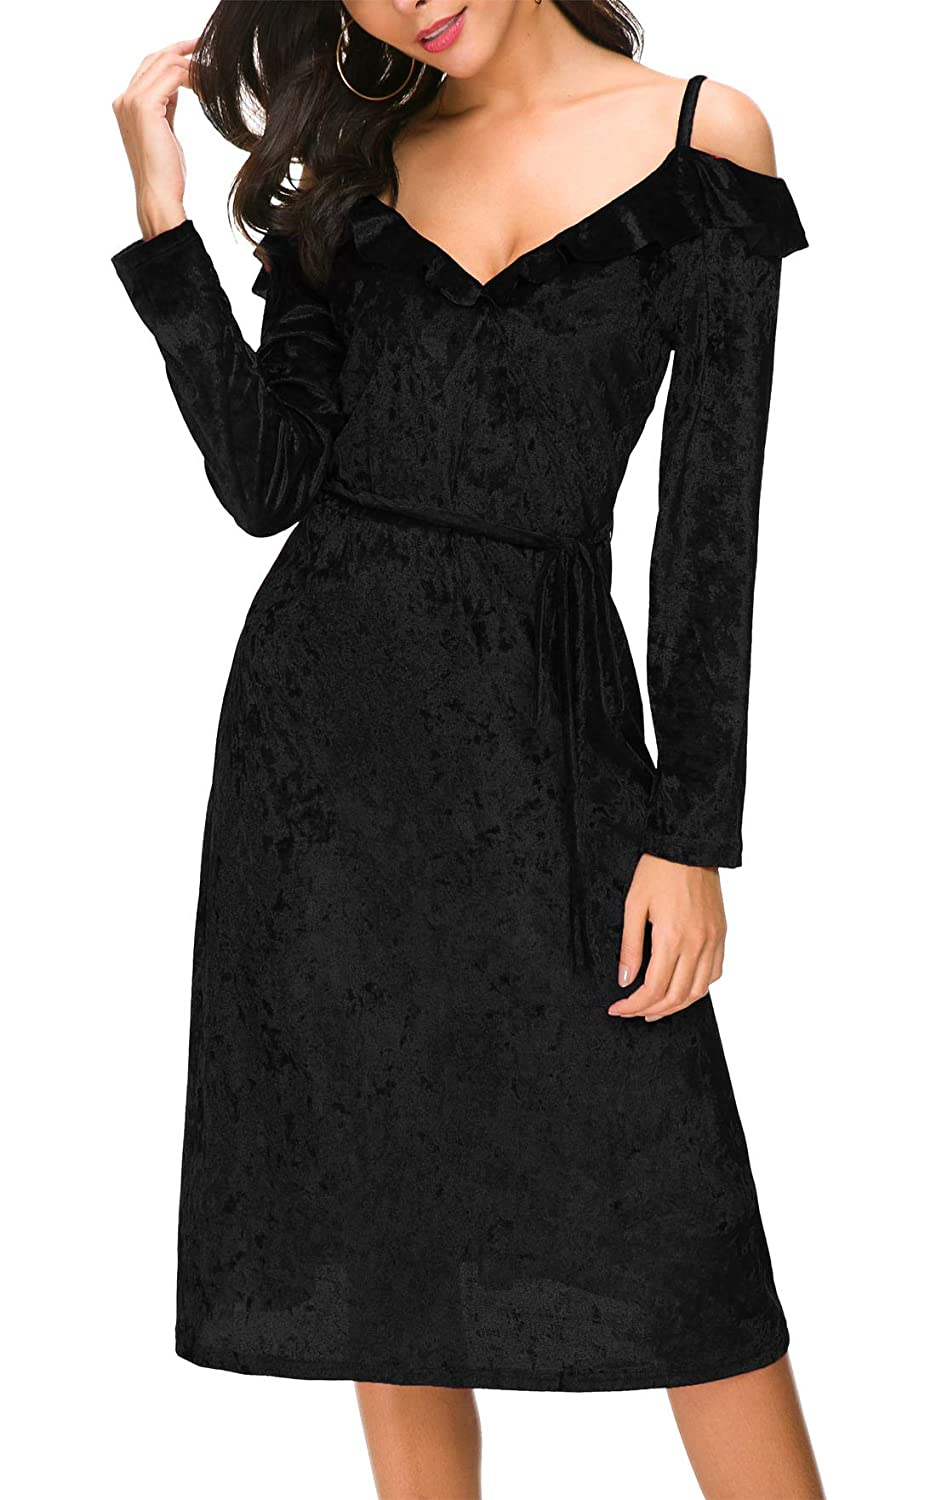 DGMYG Women s V Neck Velvet Strap Dress Long Sleeve A line Midi Cocktail  Party Dresses at Amazon Women s Clothing store  8b9a484f8